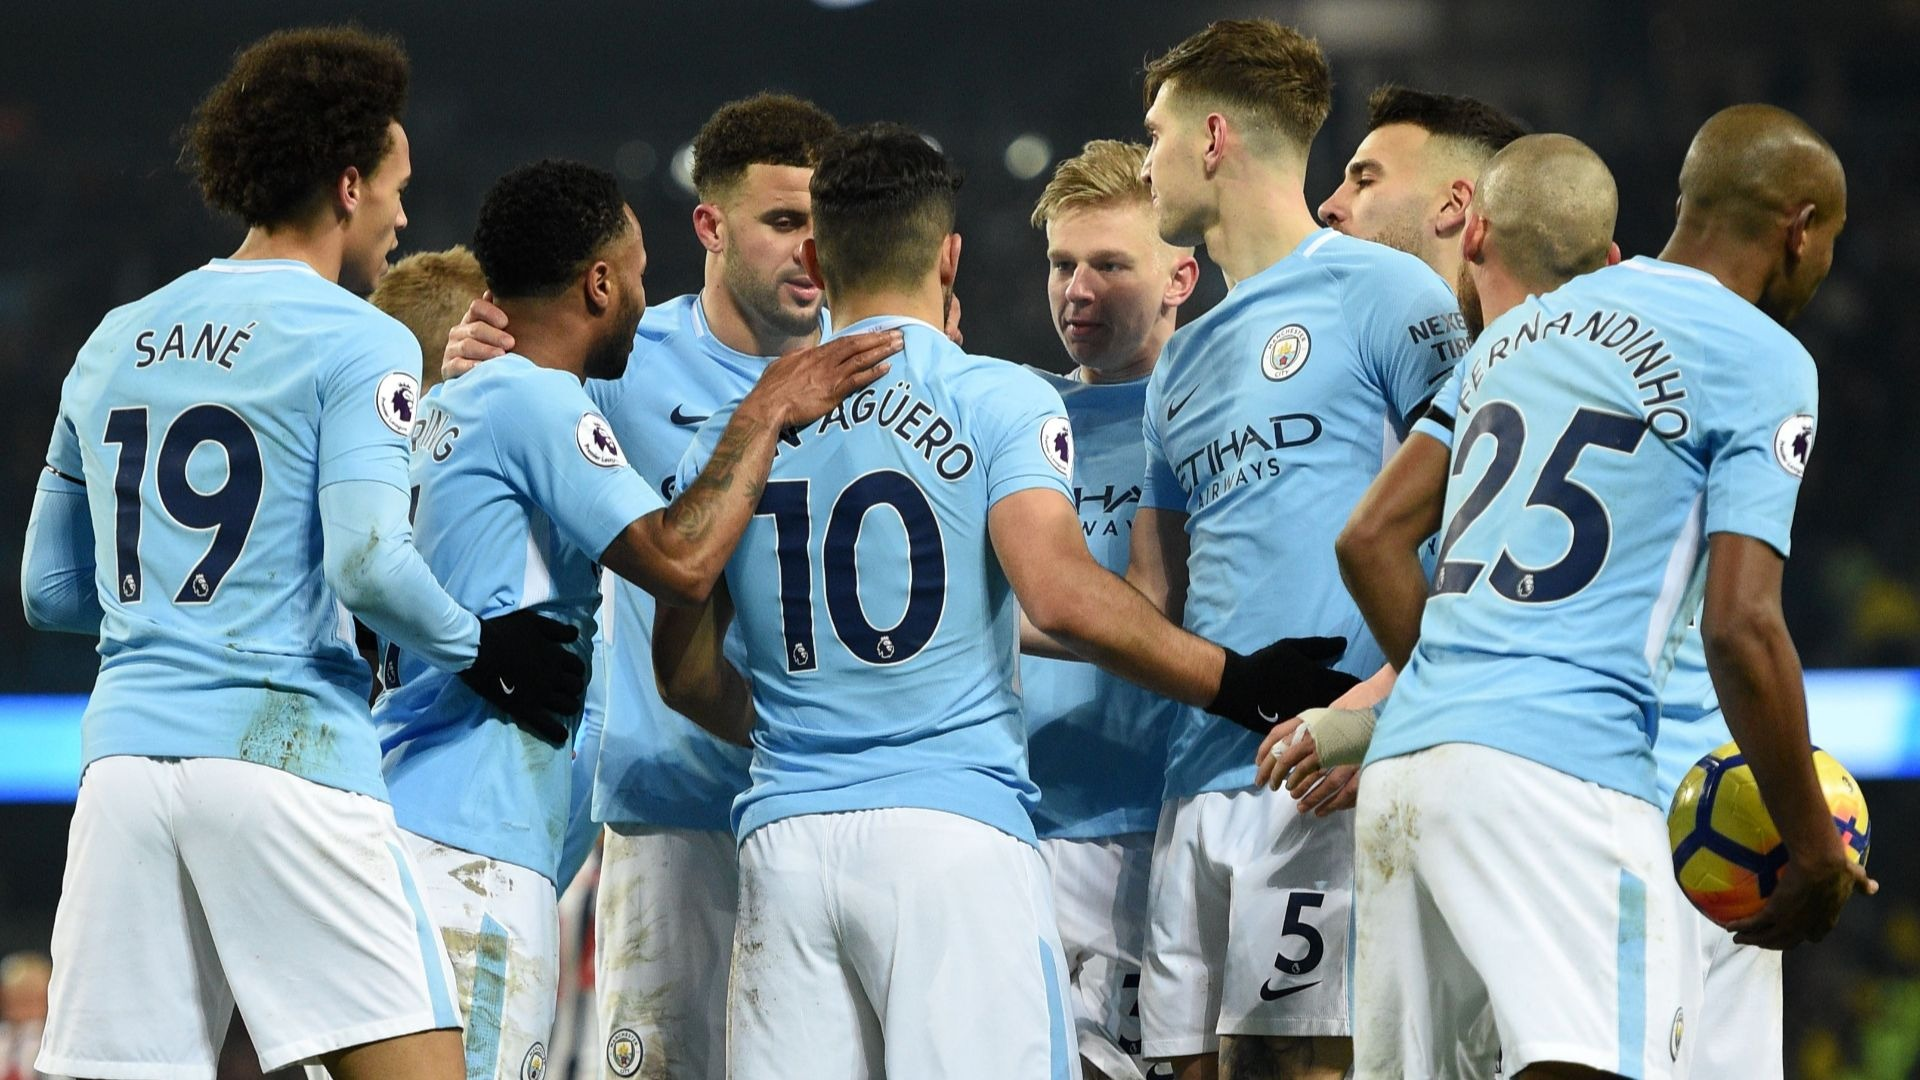 Sergio Aguero and his Manchester City teammates celebrate a goal.